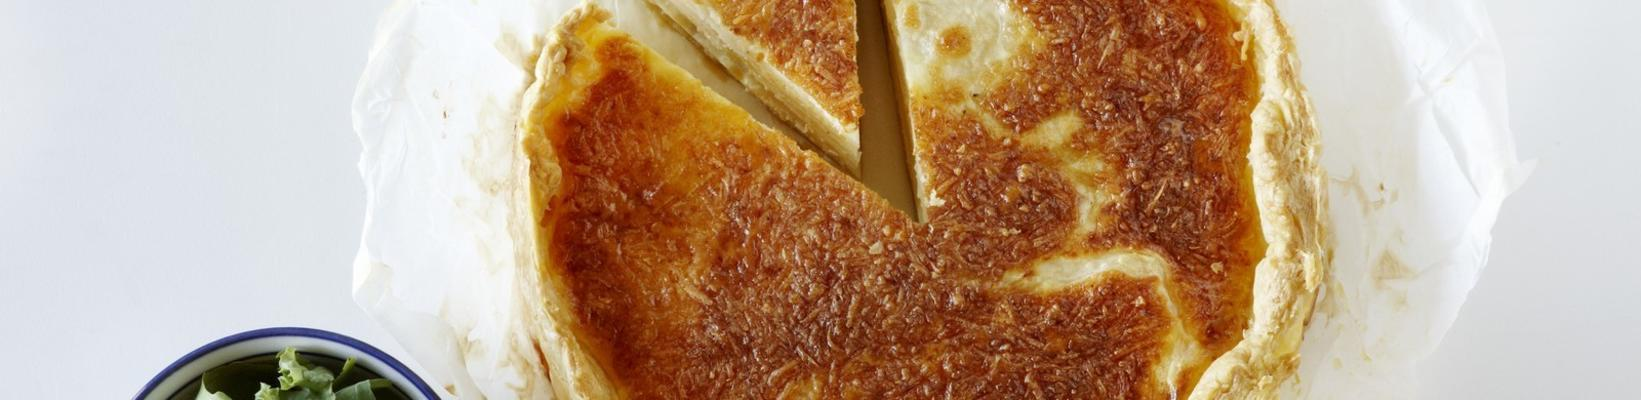 quiche with celeriac and green salad